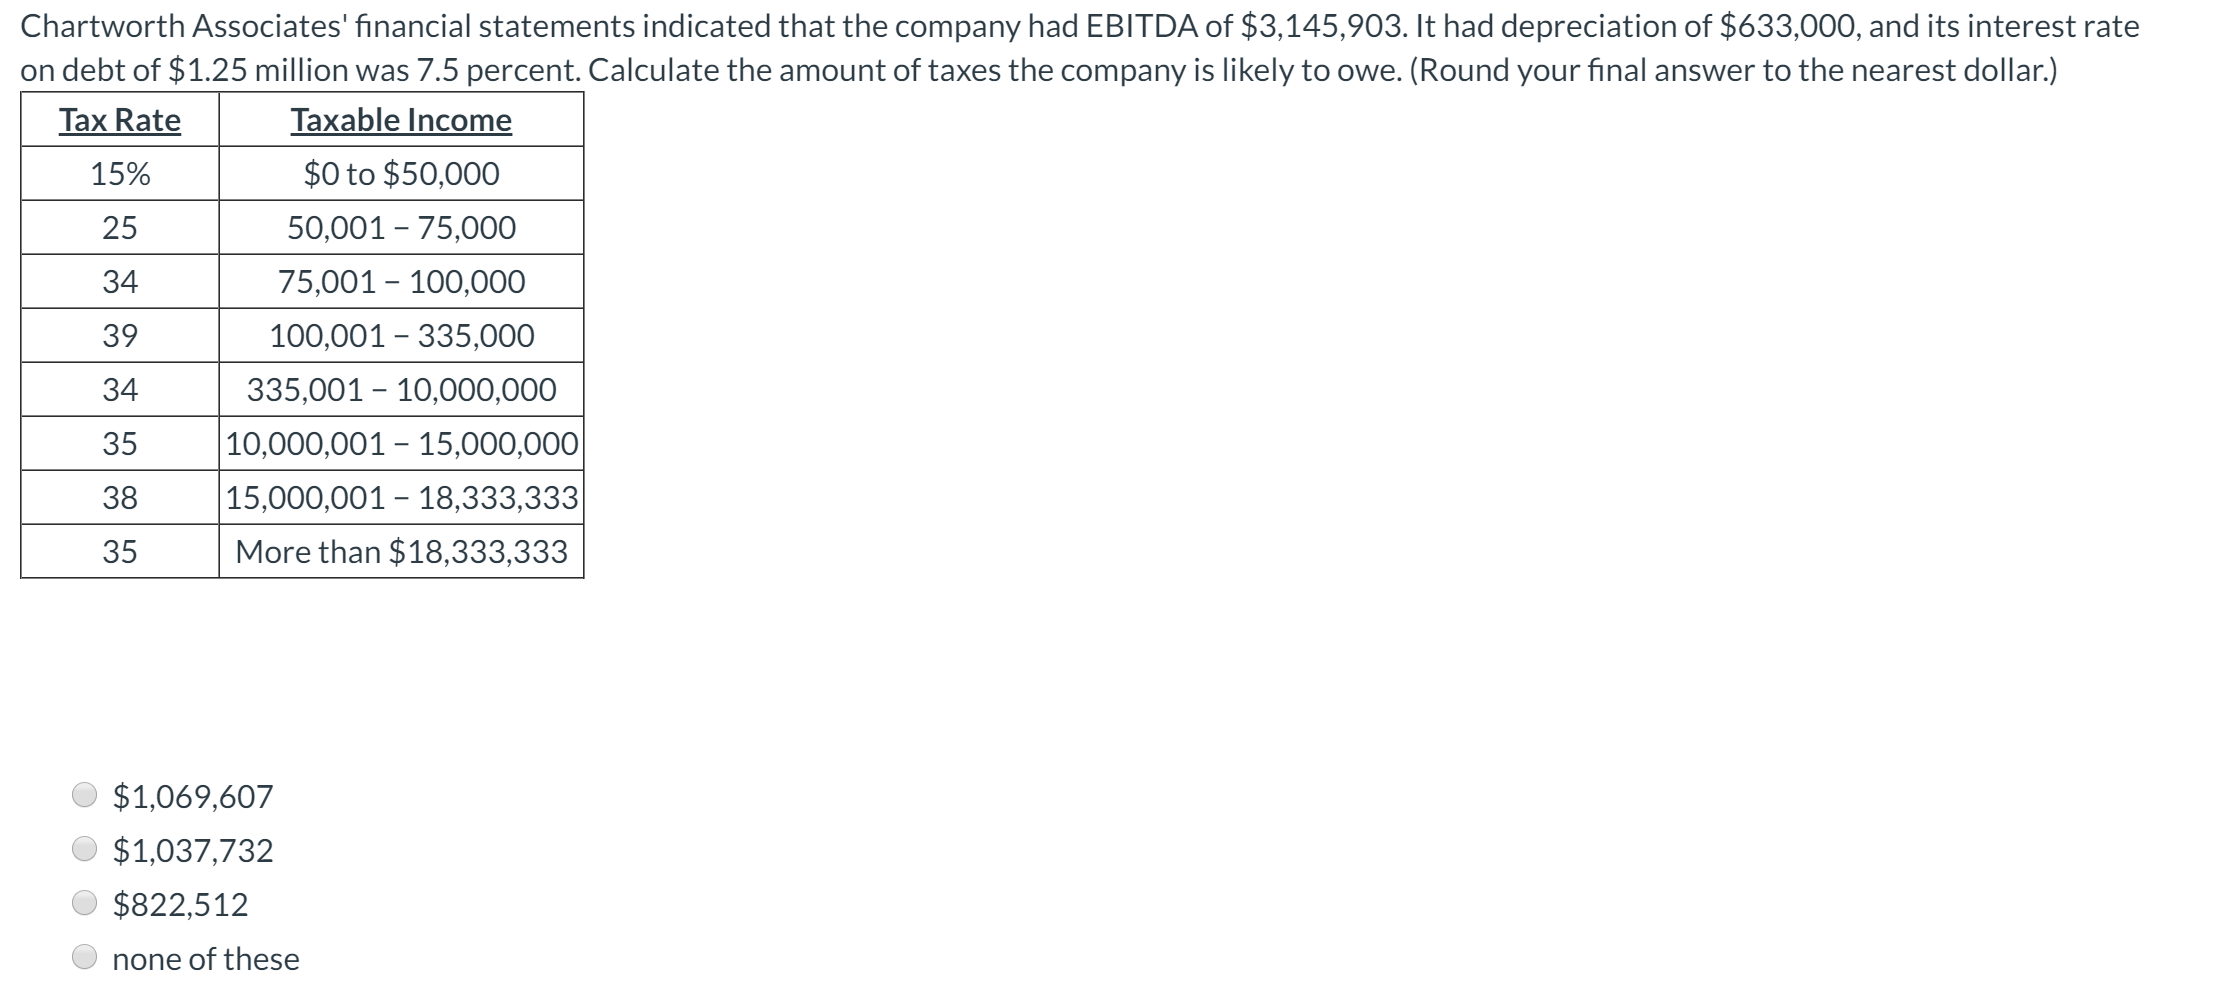 Chartworth Associates financial statements indicated that the company had EBITDA of $3,145,903. It had depreciation of $633,